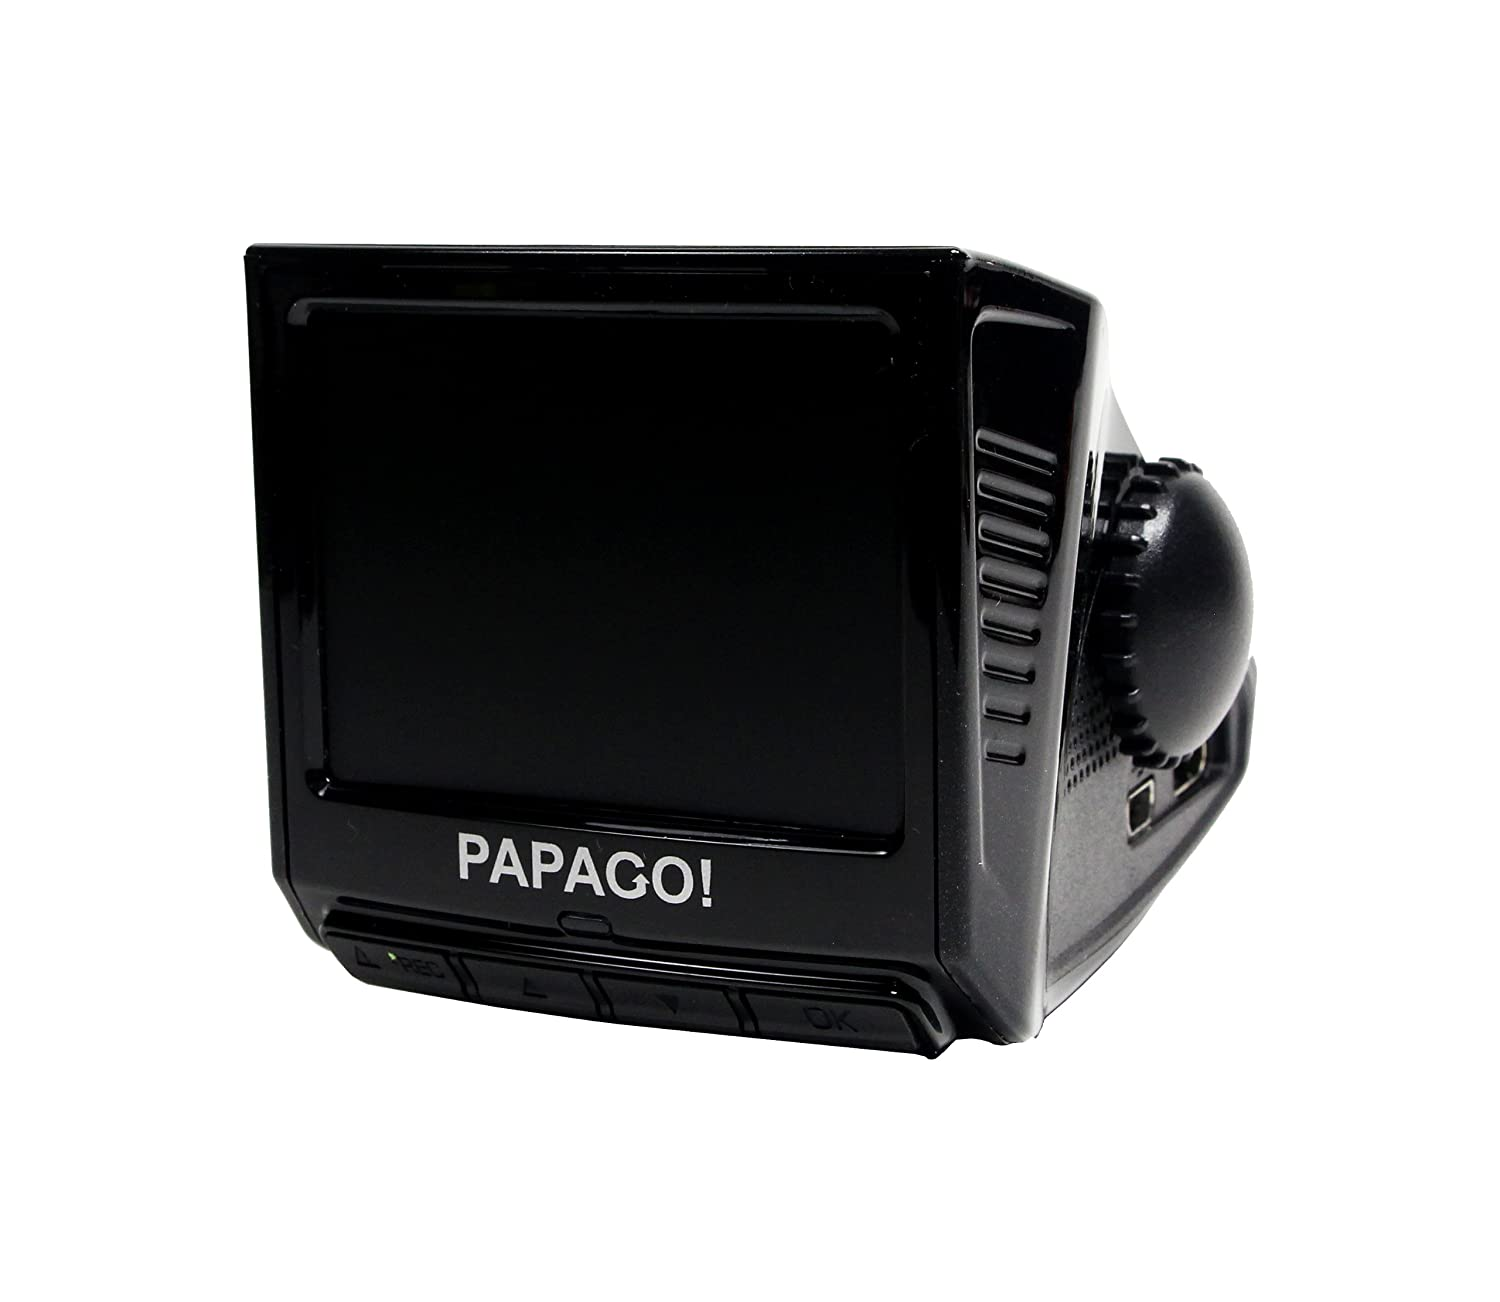 White PAPAGO Inc. PAPAGO P1PRO-US P1 Pro Full HD 1080P Wide Viewing Angle Dashcam 2.4-Inch LCD